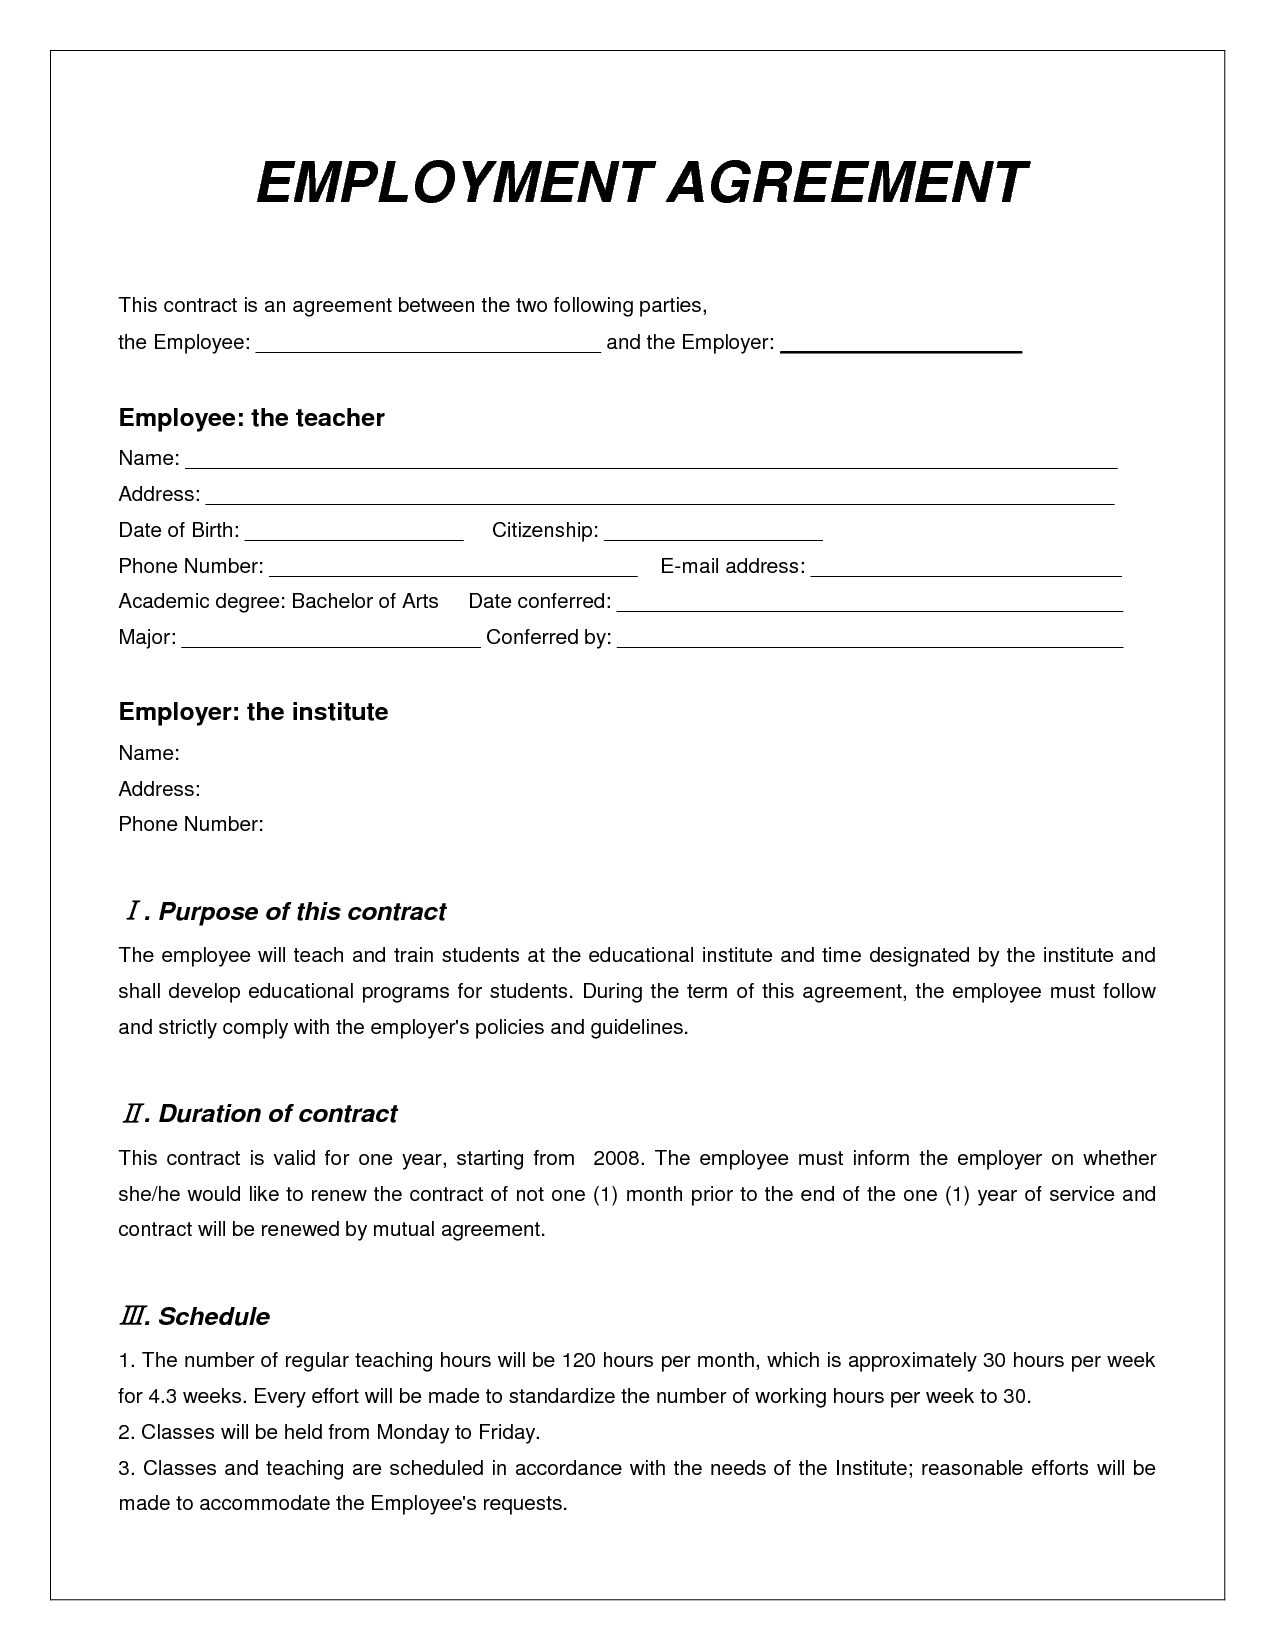 Labor Contract Template - Invitation Templates - Employment - Free Printable Employment Contracts